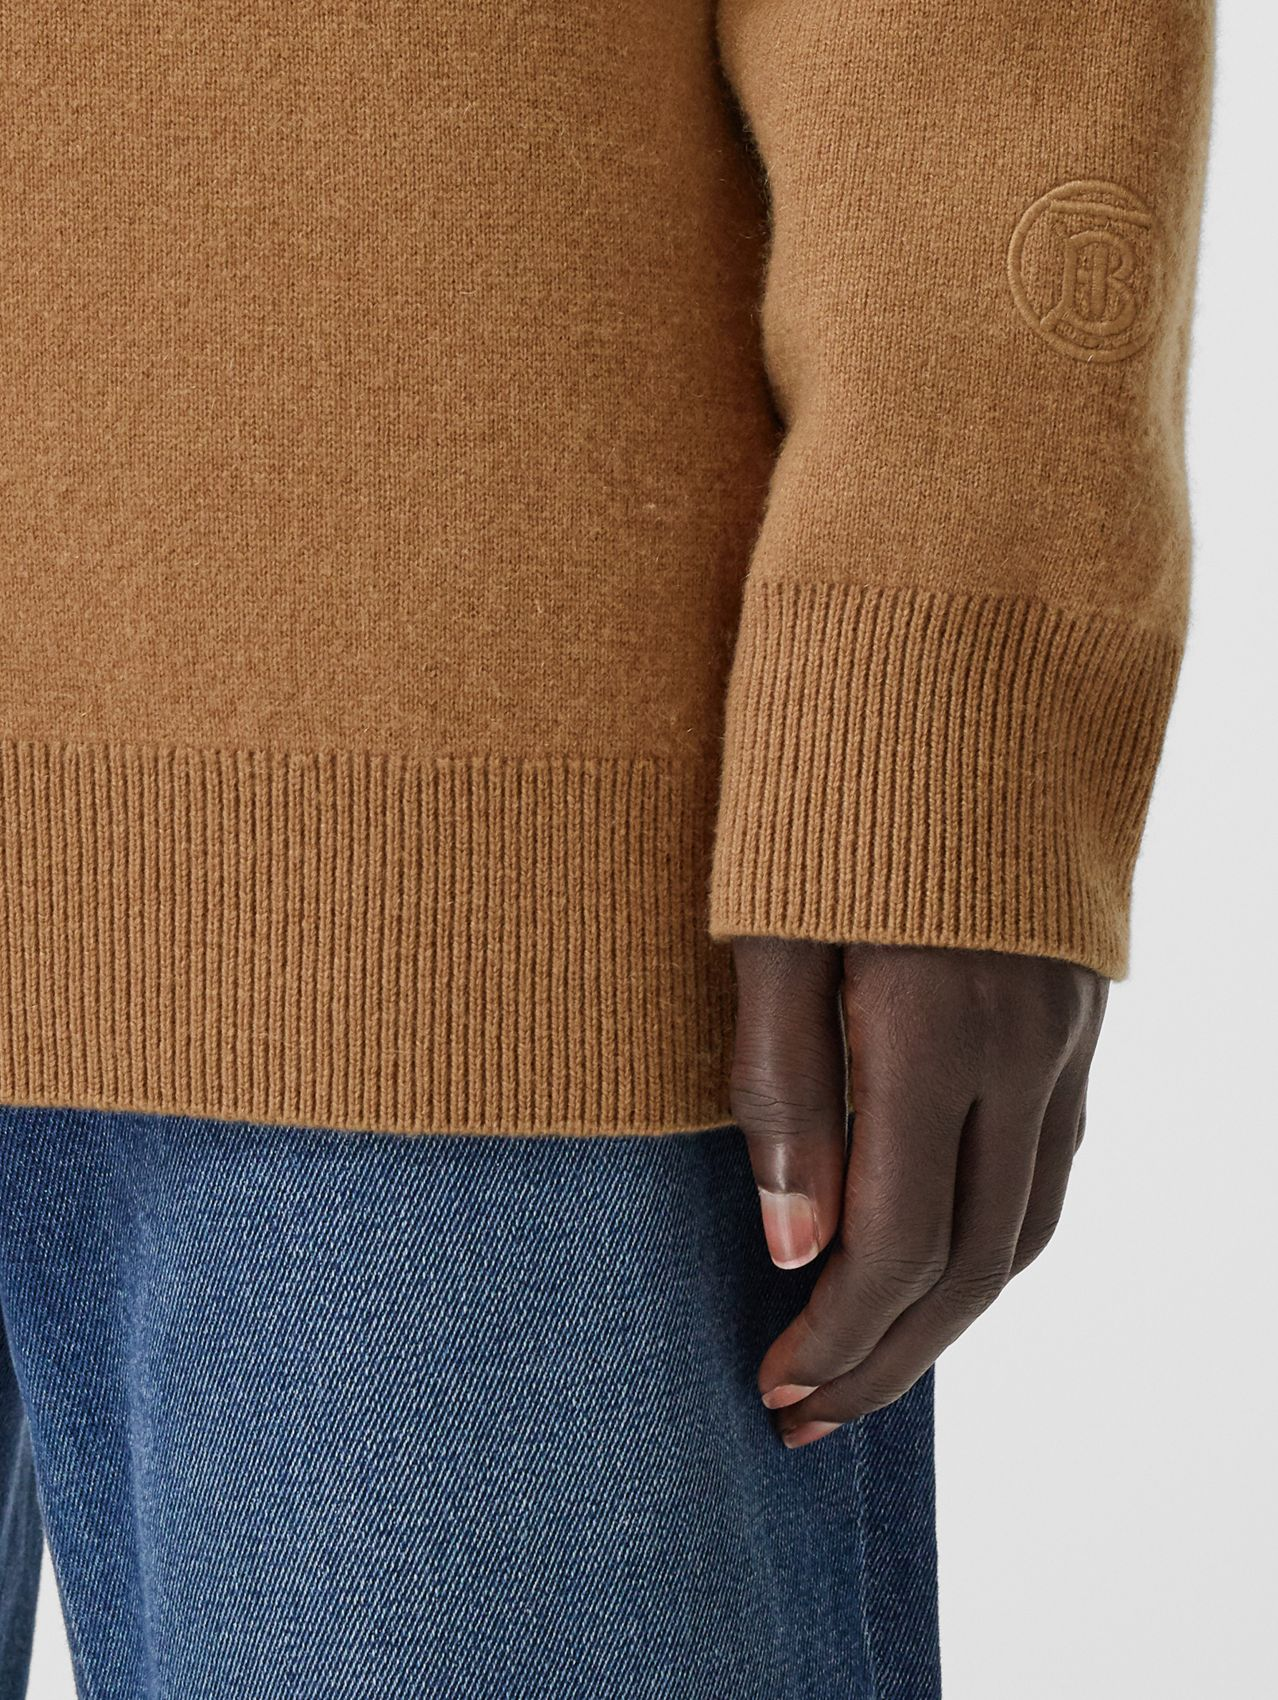 Monogram Motif Cashmere Blend Funnel Neck Sweater in Camel